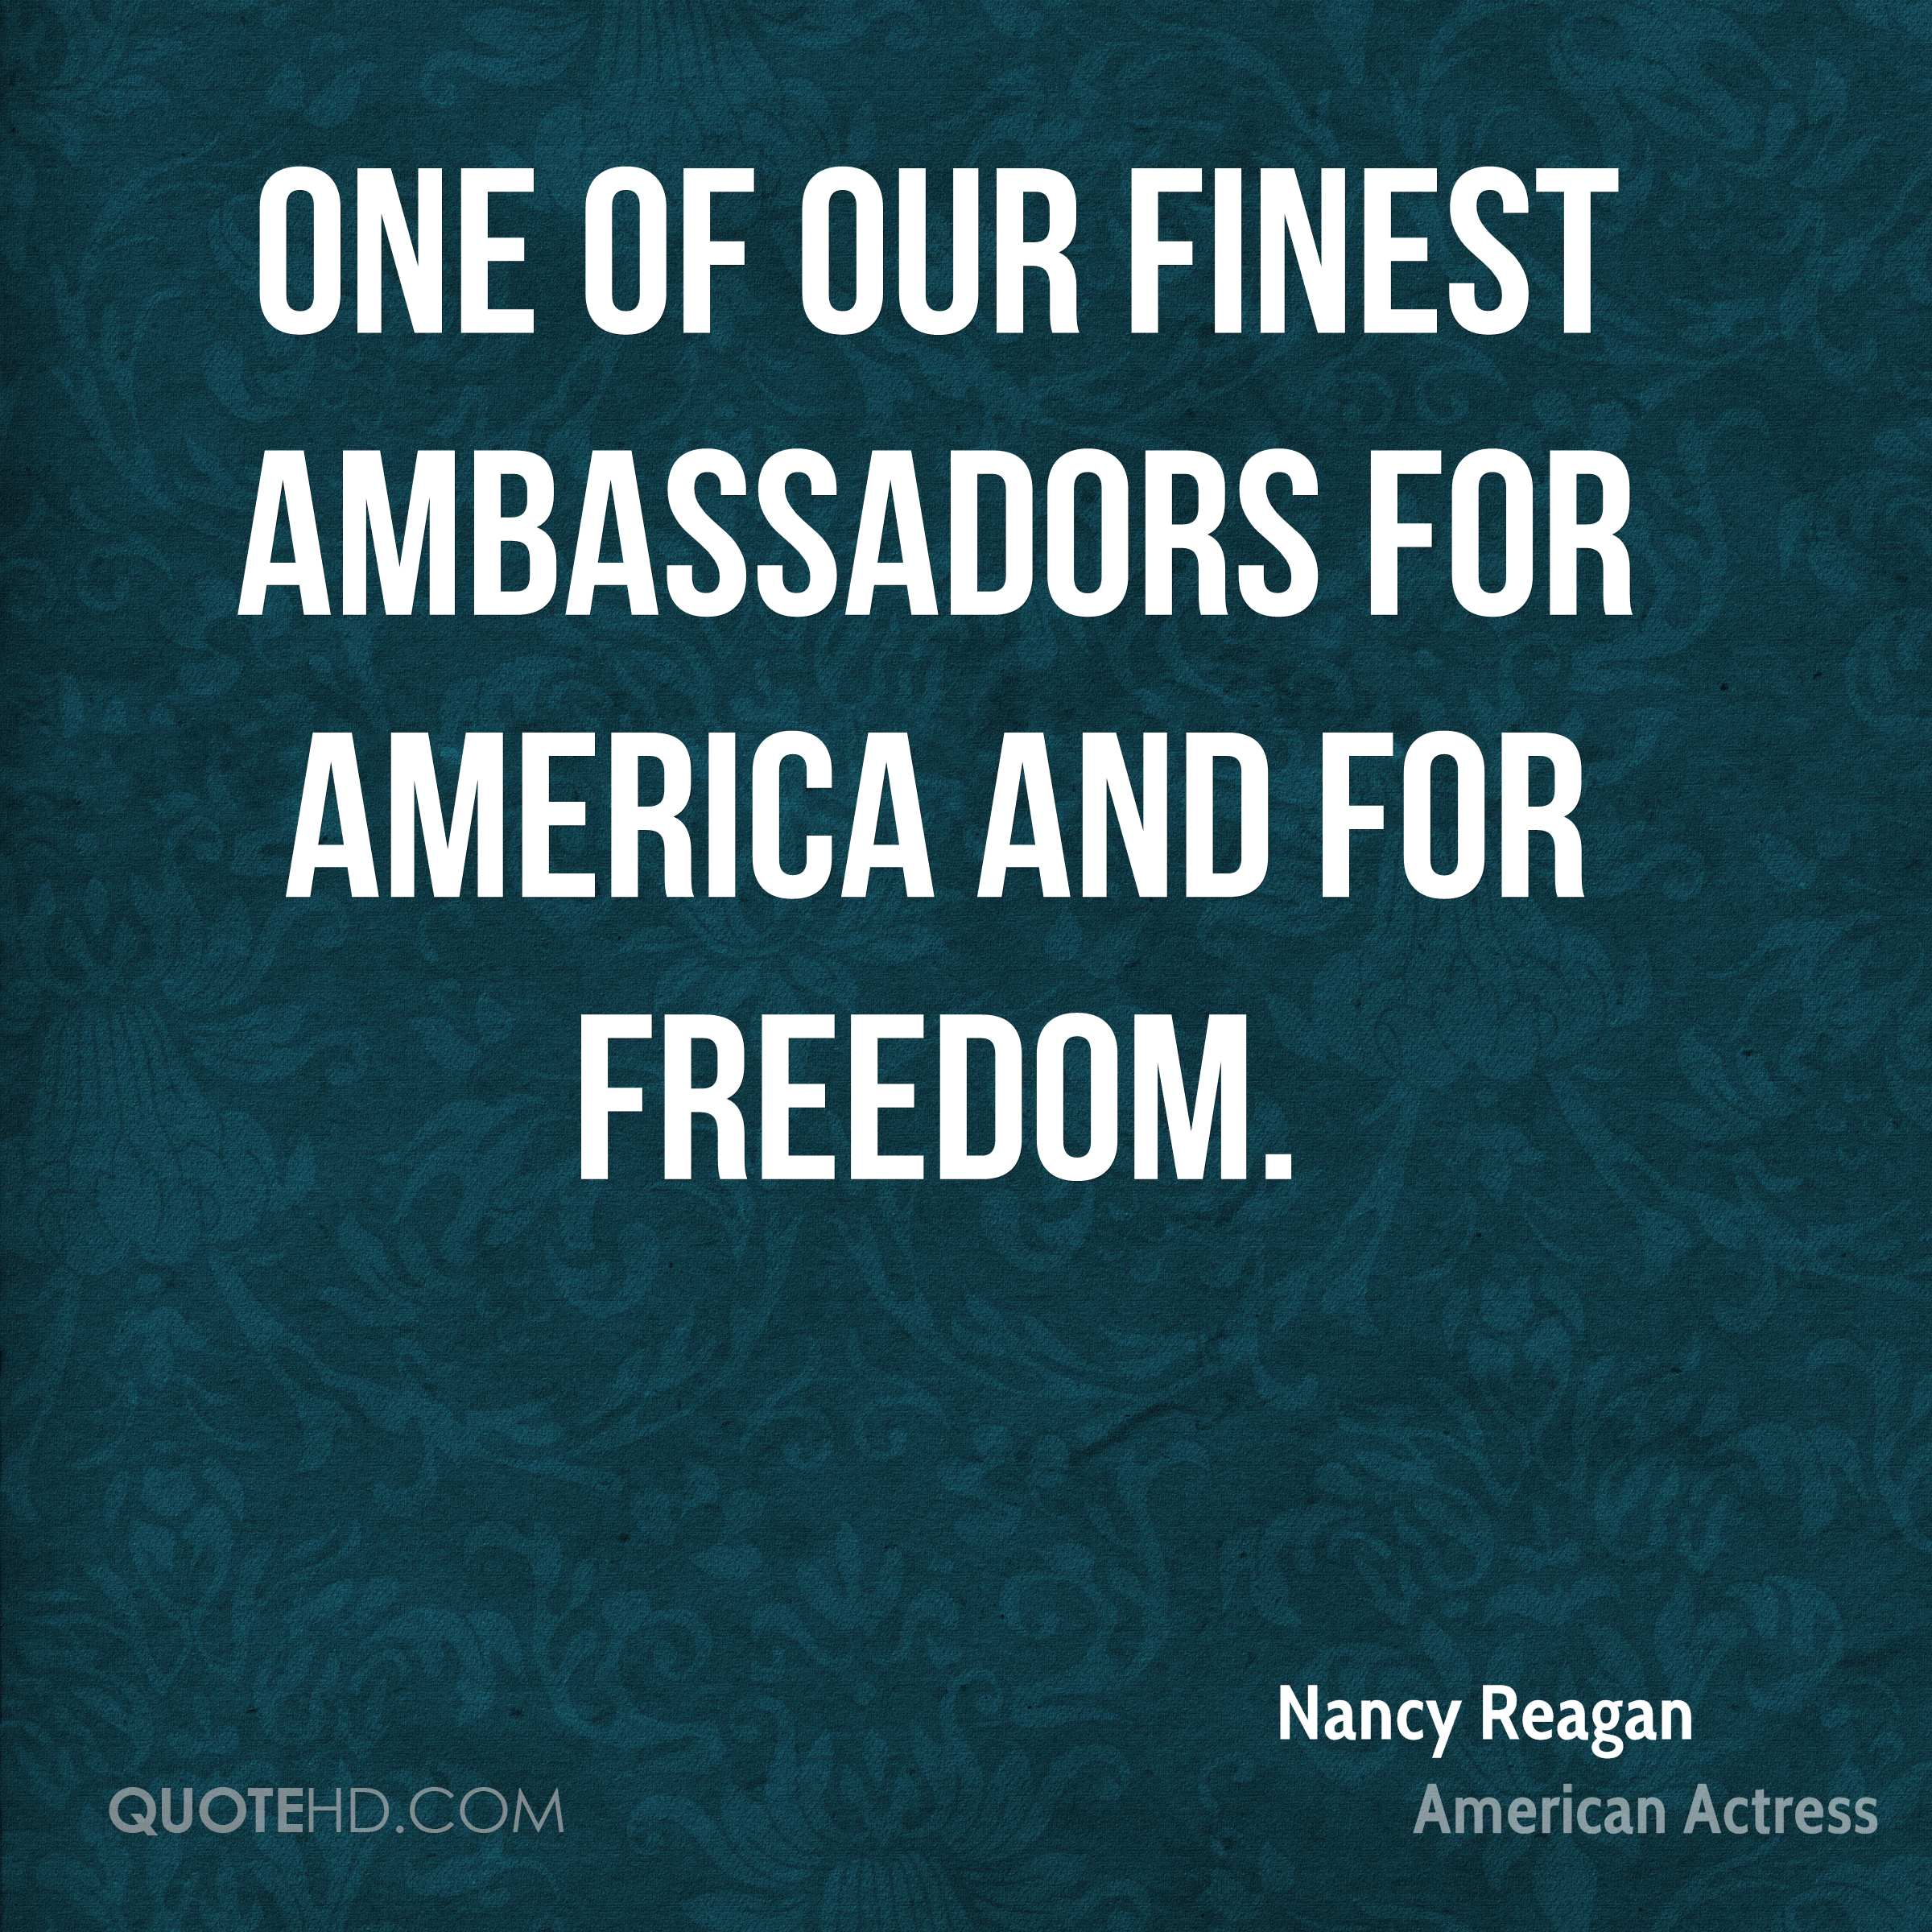 one of our finest ambassadors for America and for freedom.